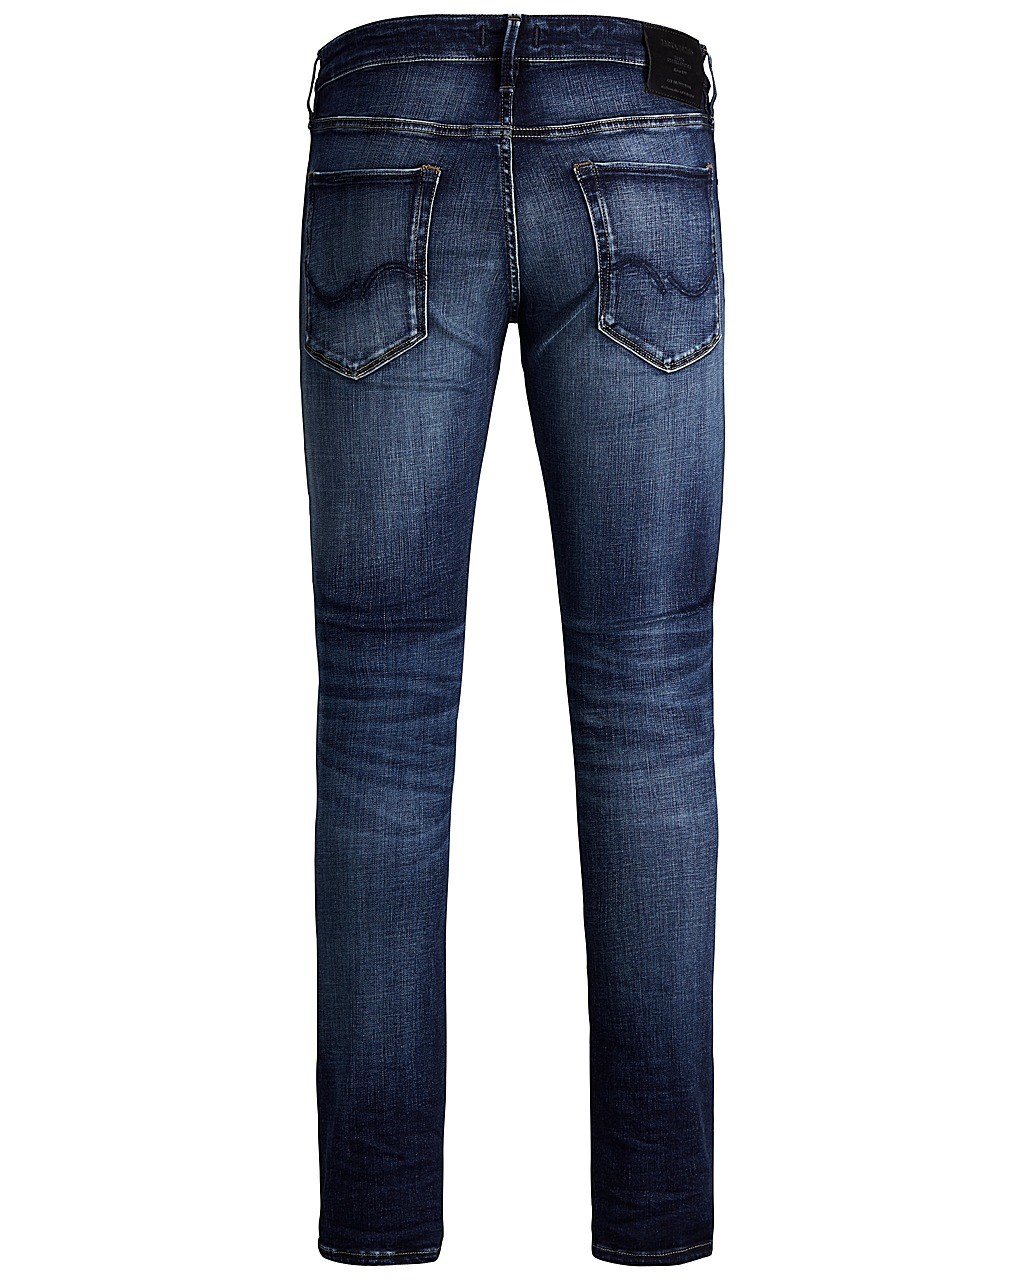 jack-jones-herren-jeans-jjiglenn-jjicon-jj-057-50sps-slim-fit-blau-black-denim